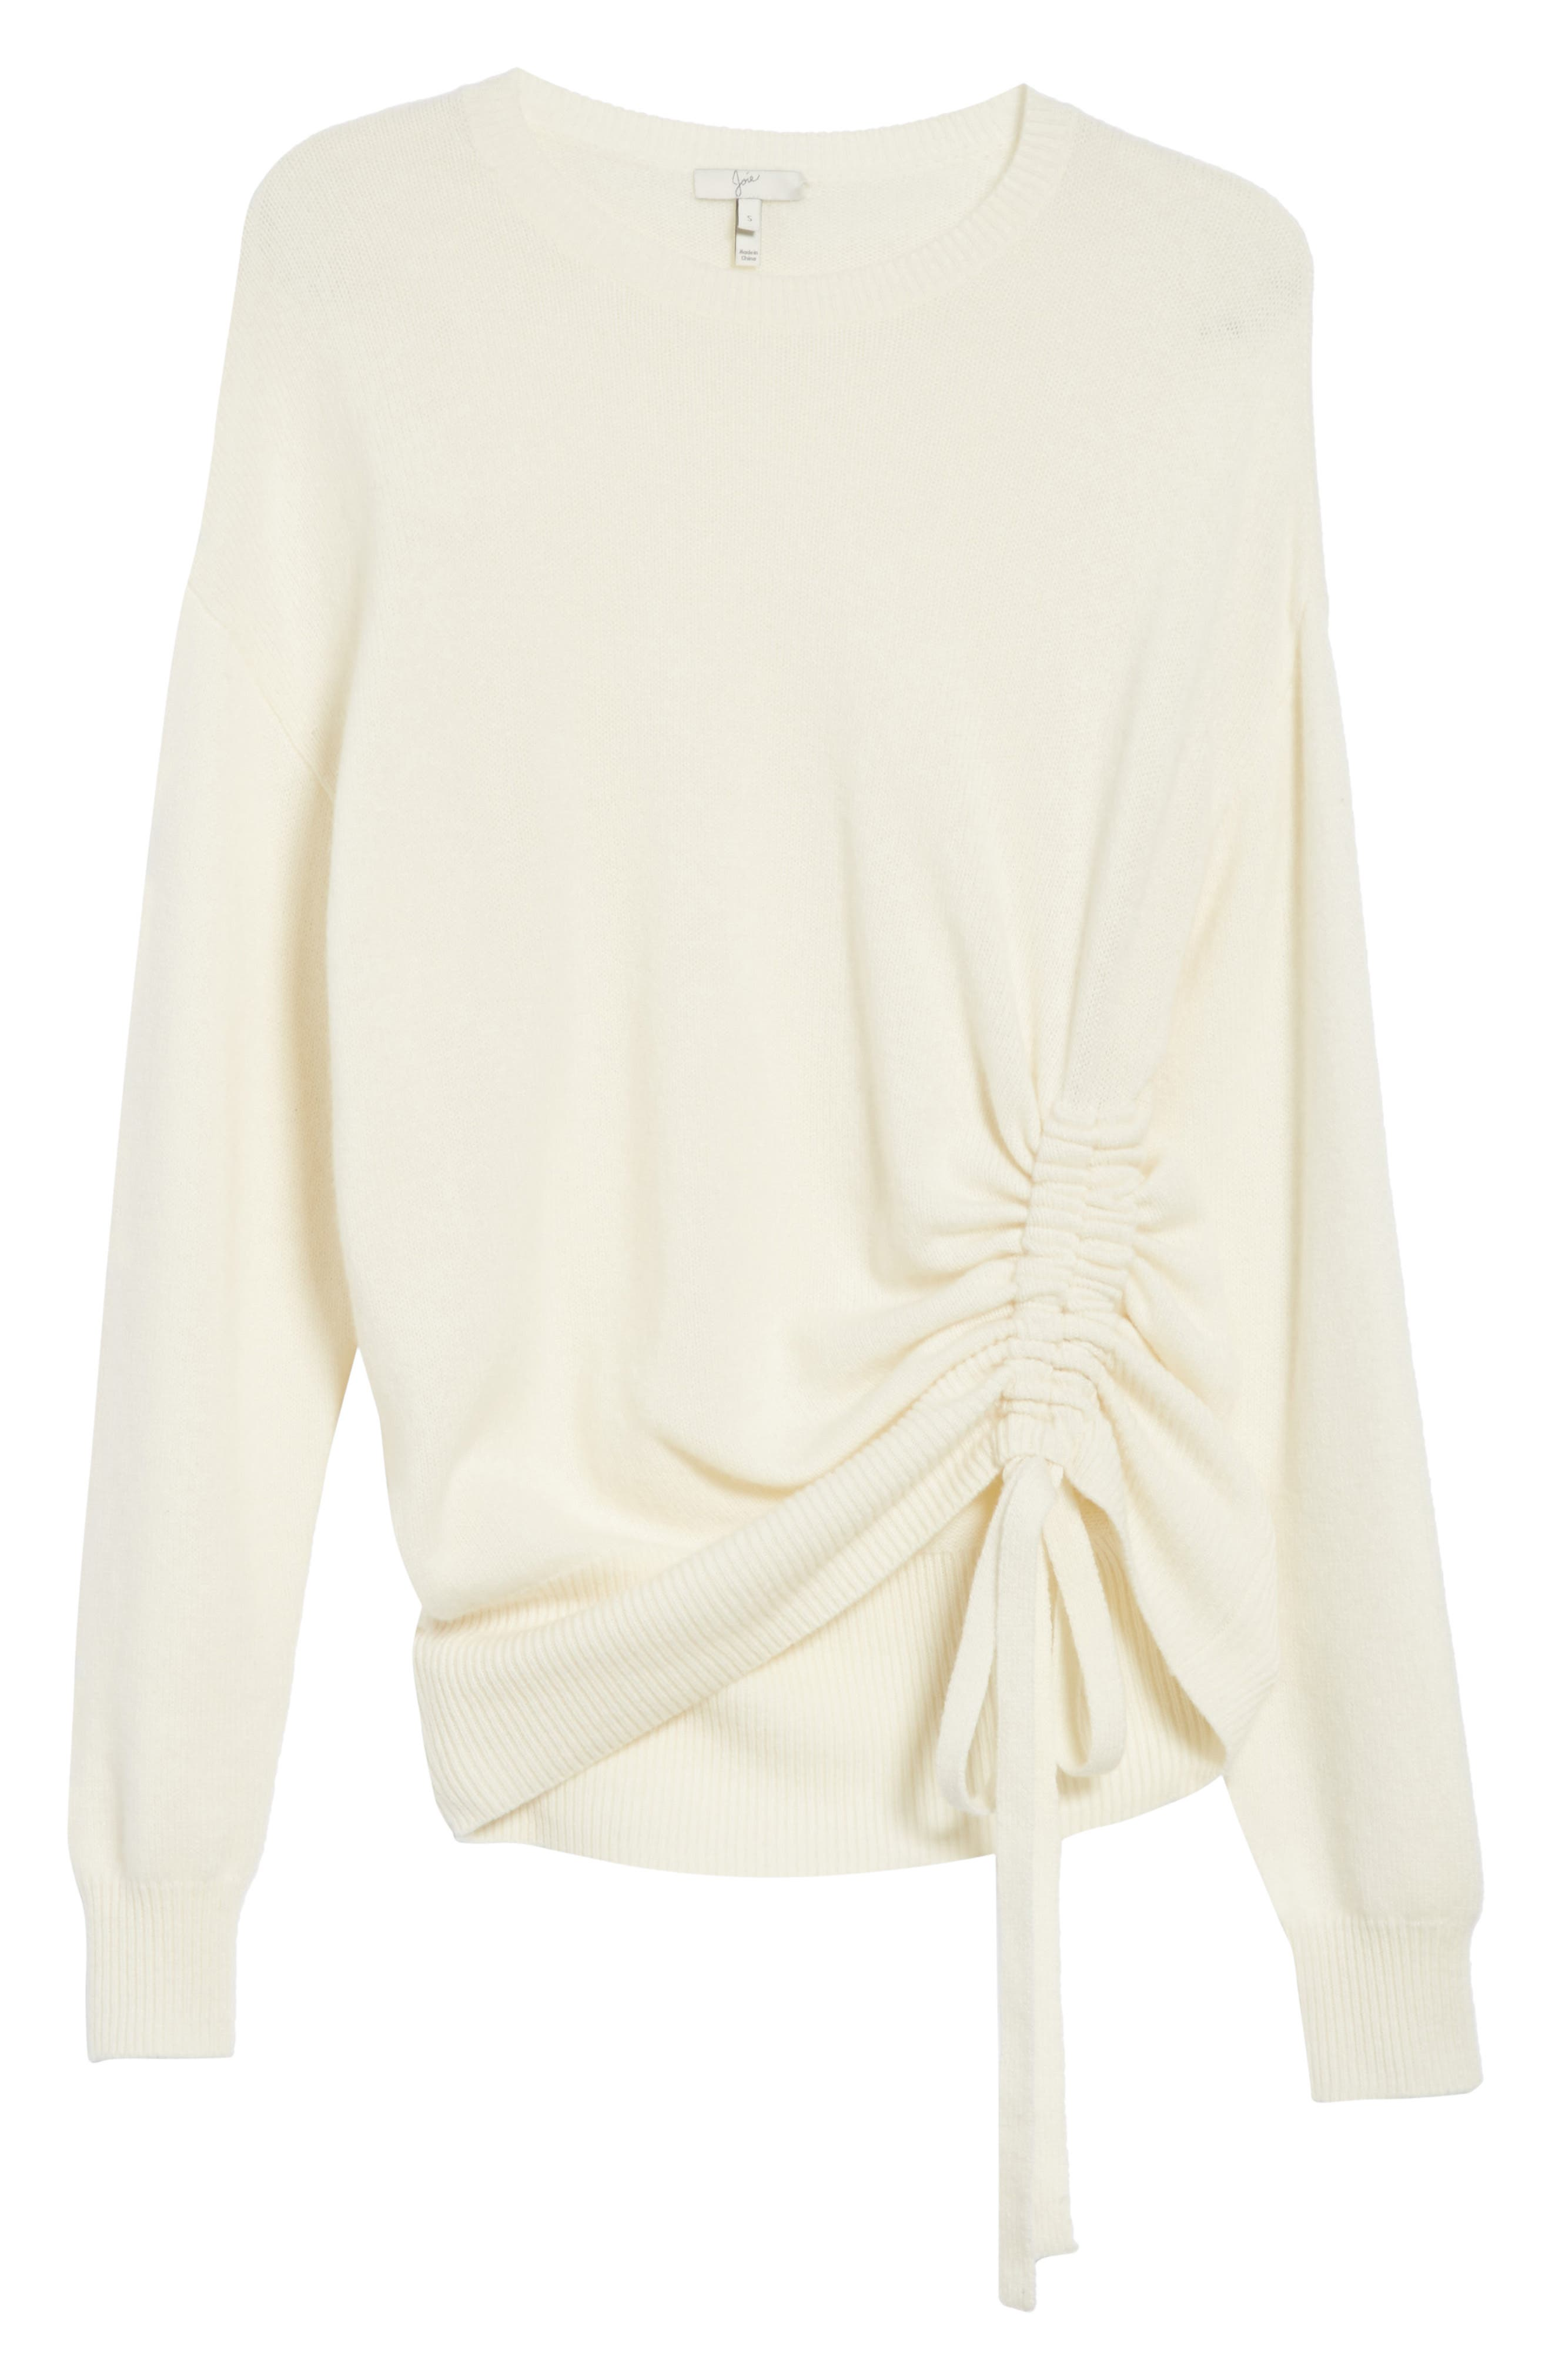 Iphis Wool & Cashmere Sweater,                             Alternate thumbnail 6, color,                             Porcelain